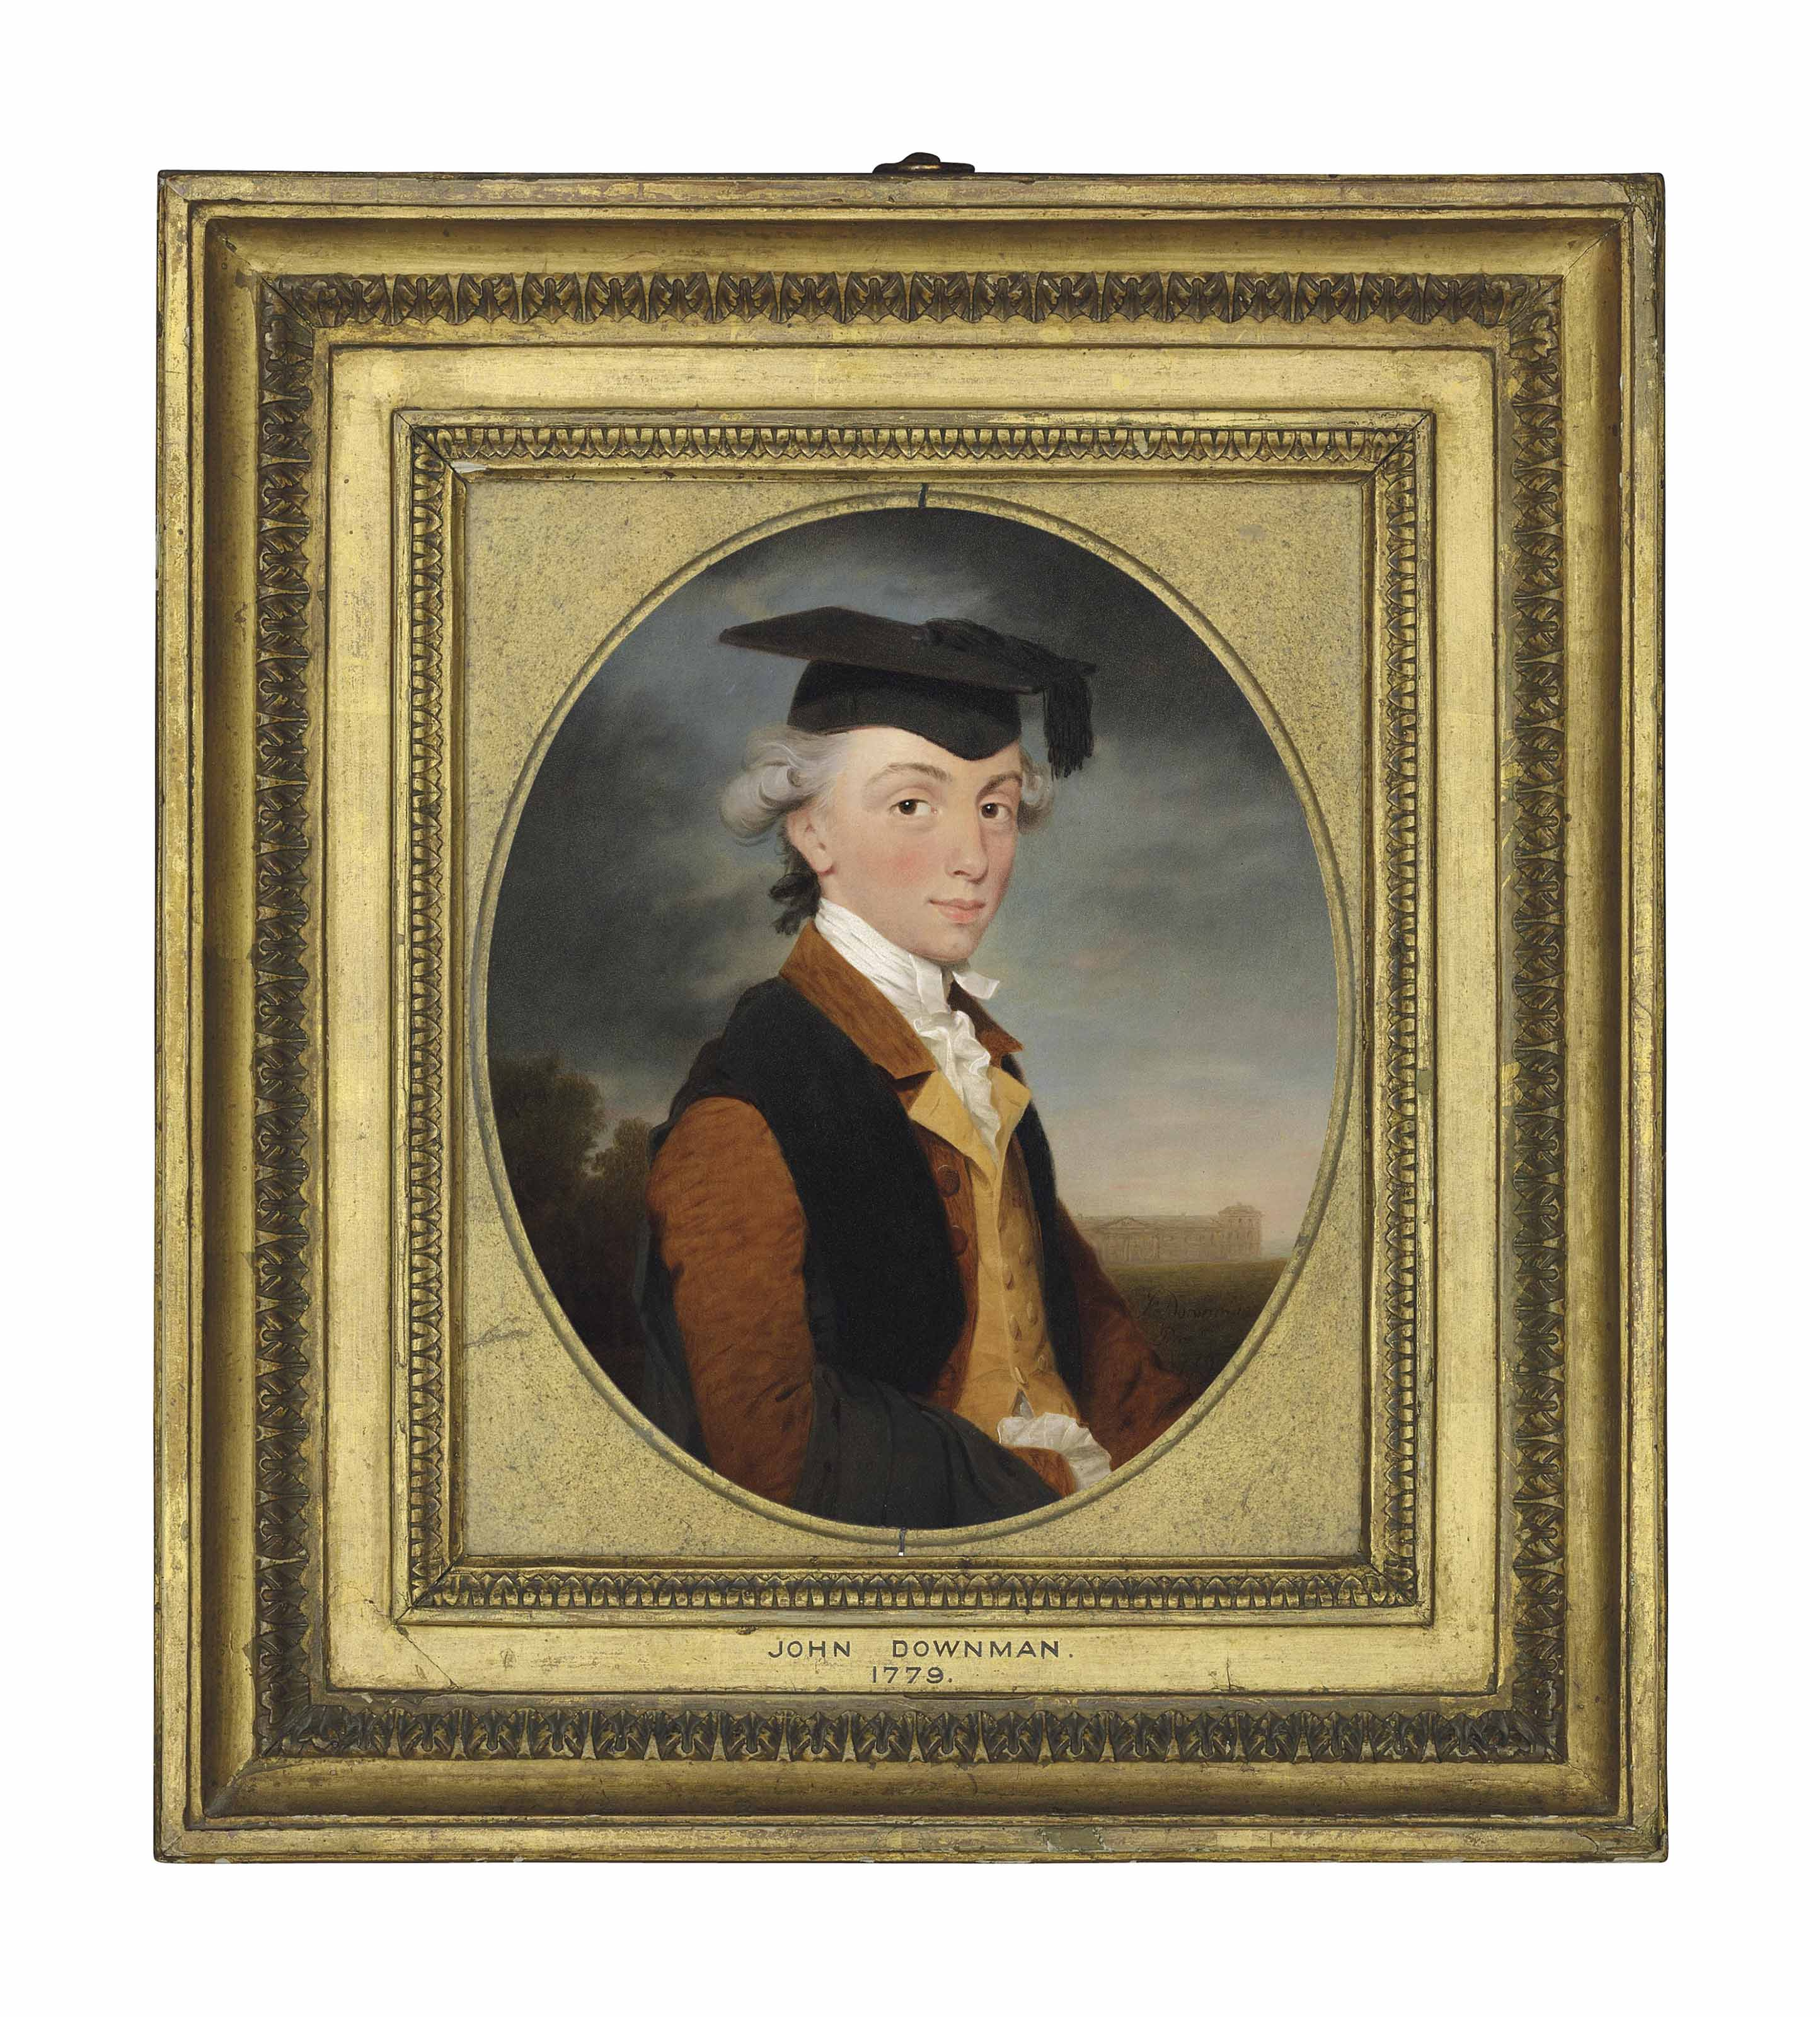 Portrait of Charles Chadwick (1753-1829), half-length, in a brown coat, yellow waistcoat and gown, wearing a mortar board, Emmanuel College, Cambridge beyond